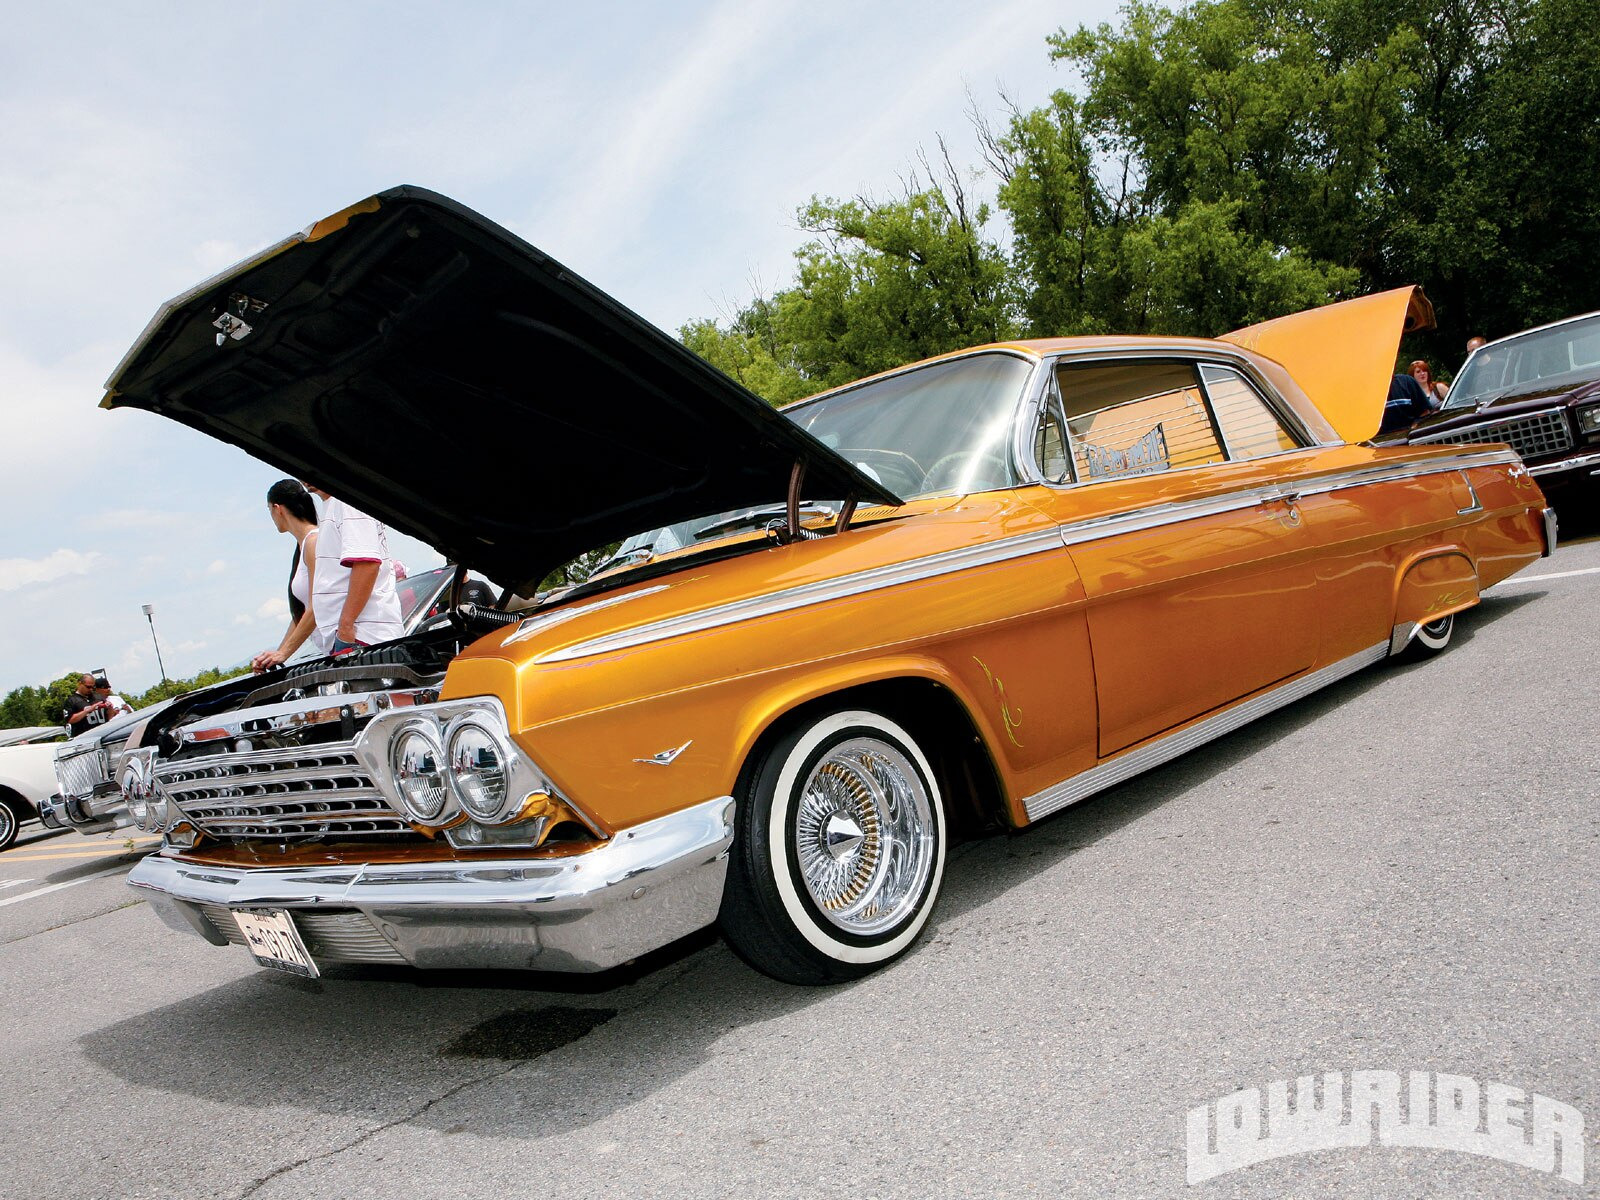 lrmp-1001-02-o-victors-tires-salt-lake-city-car-show-orange-impala2